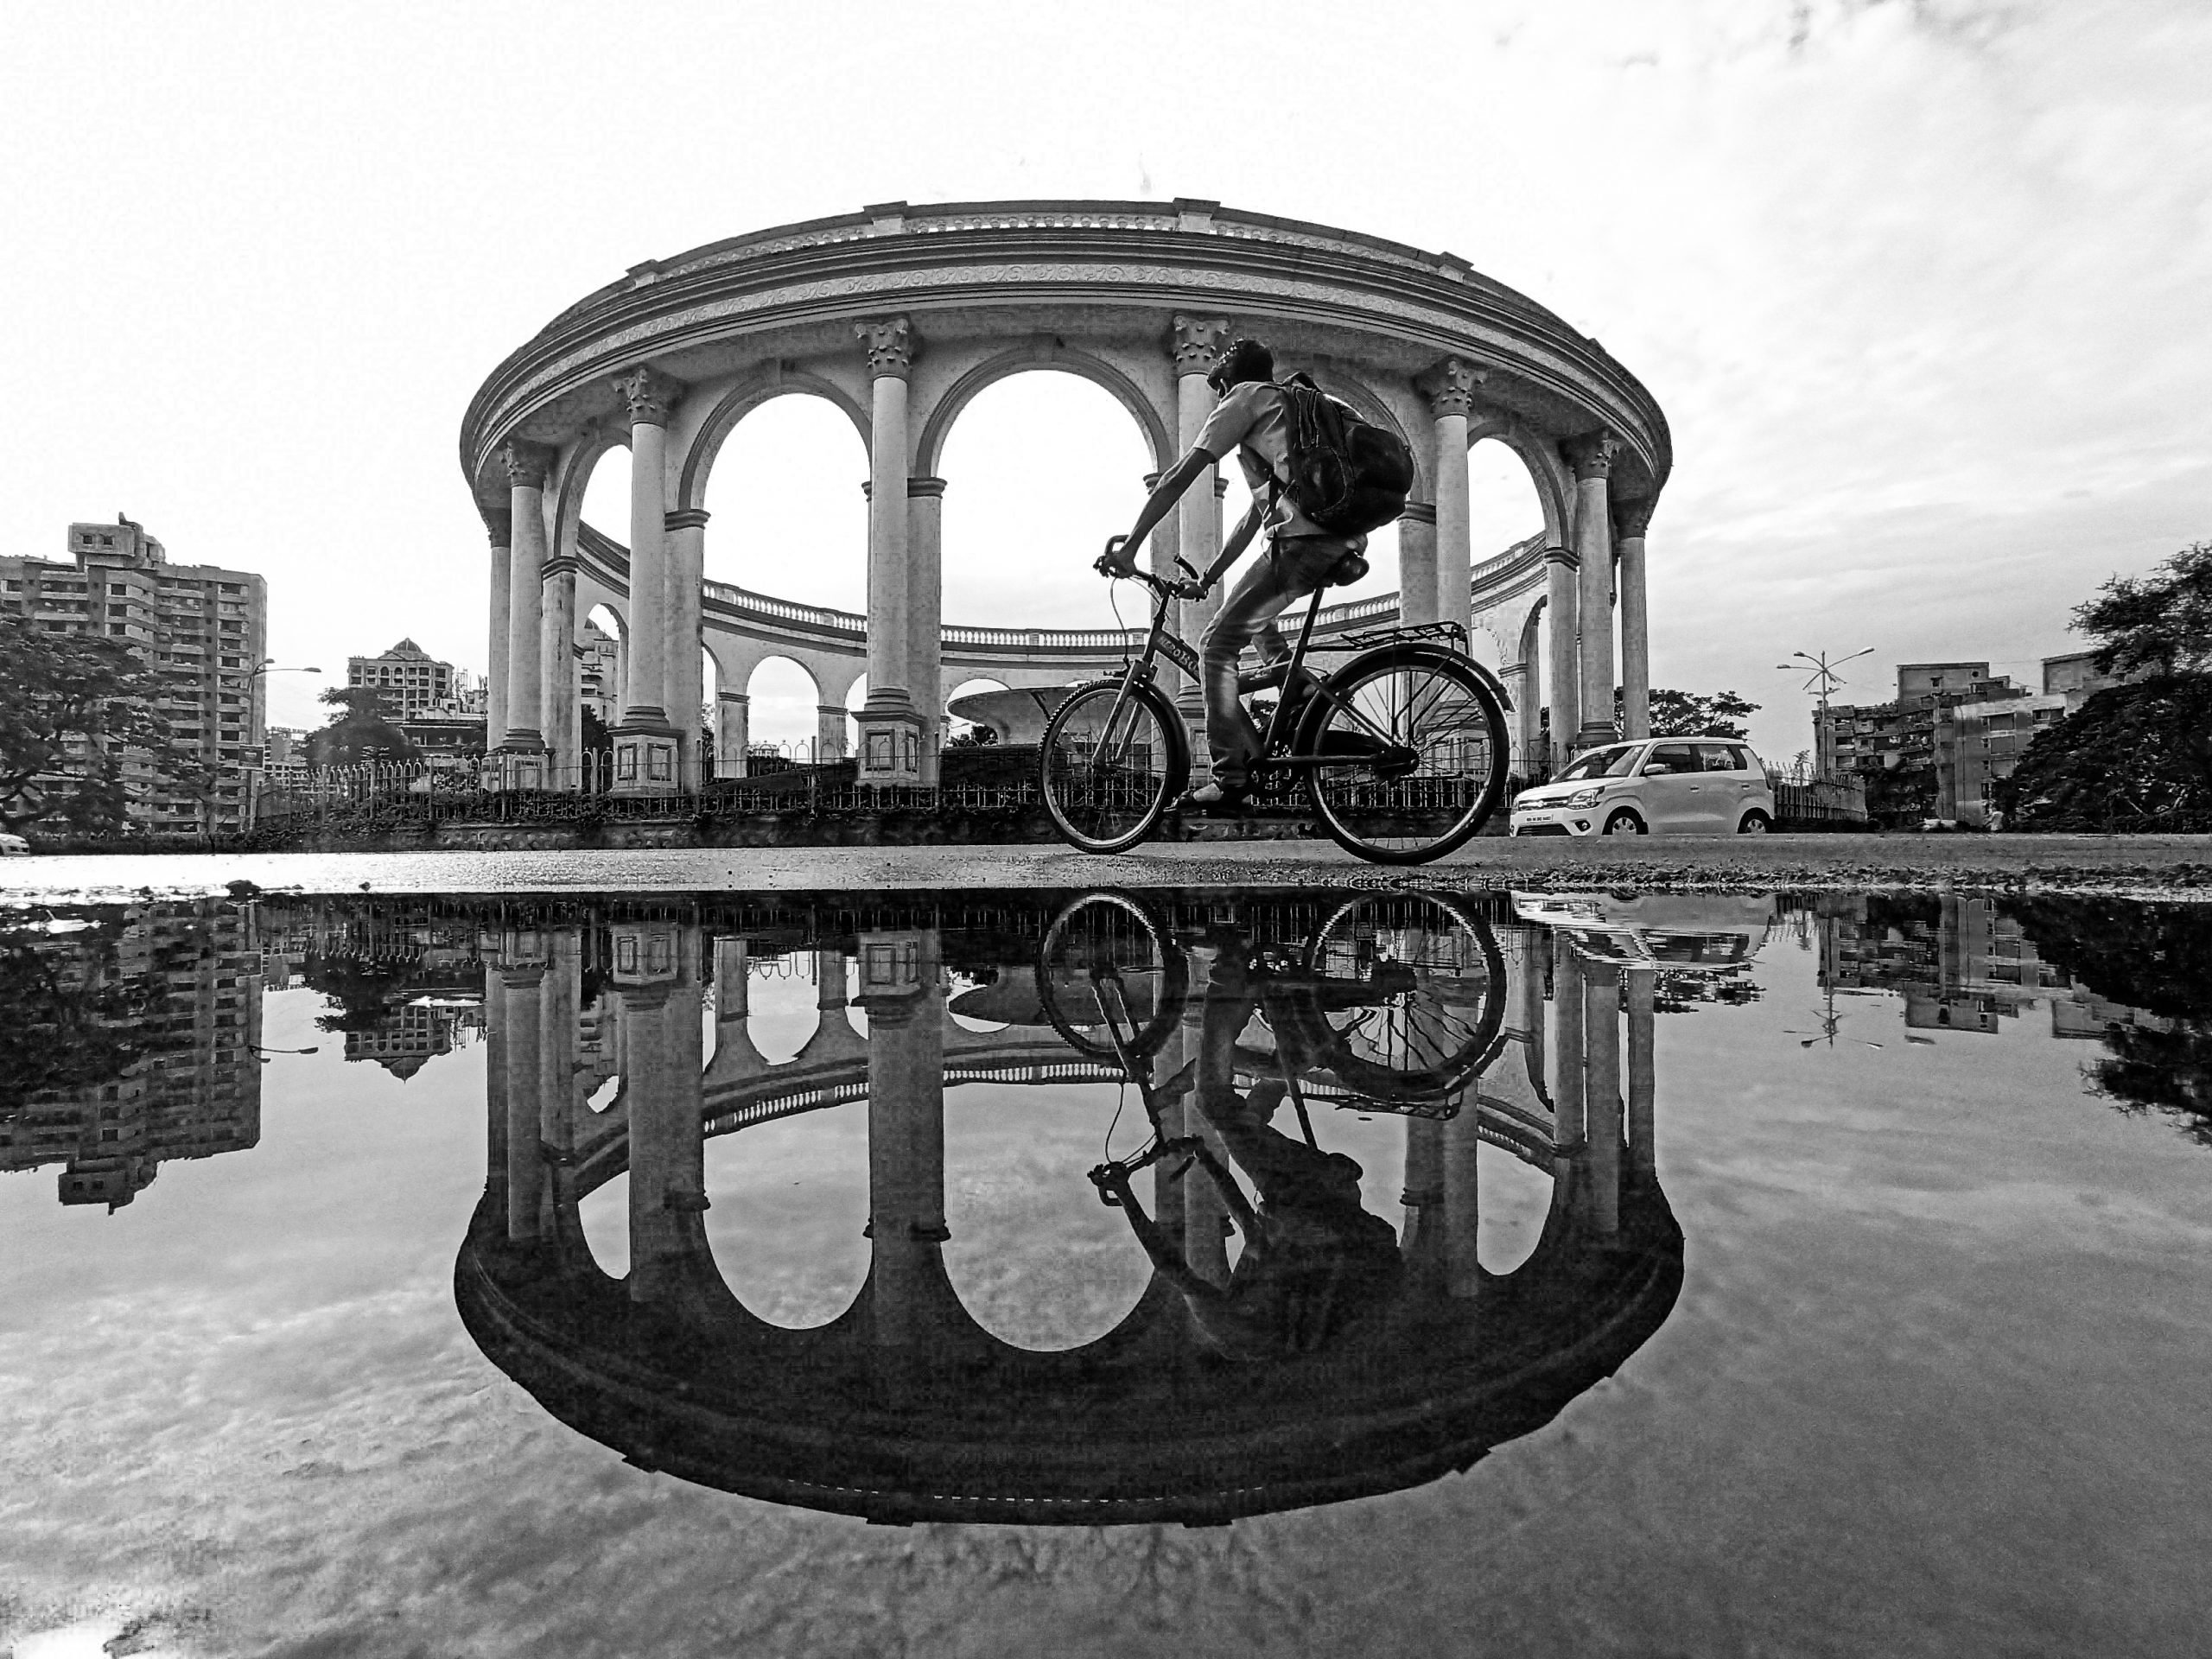 Reflection of things in water